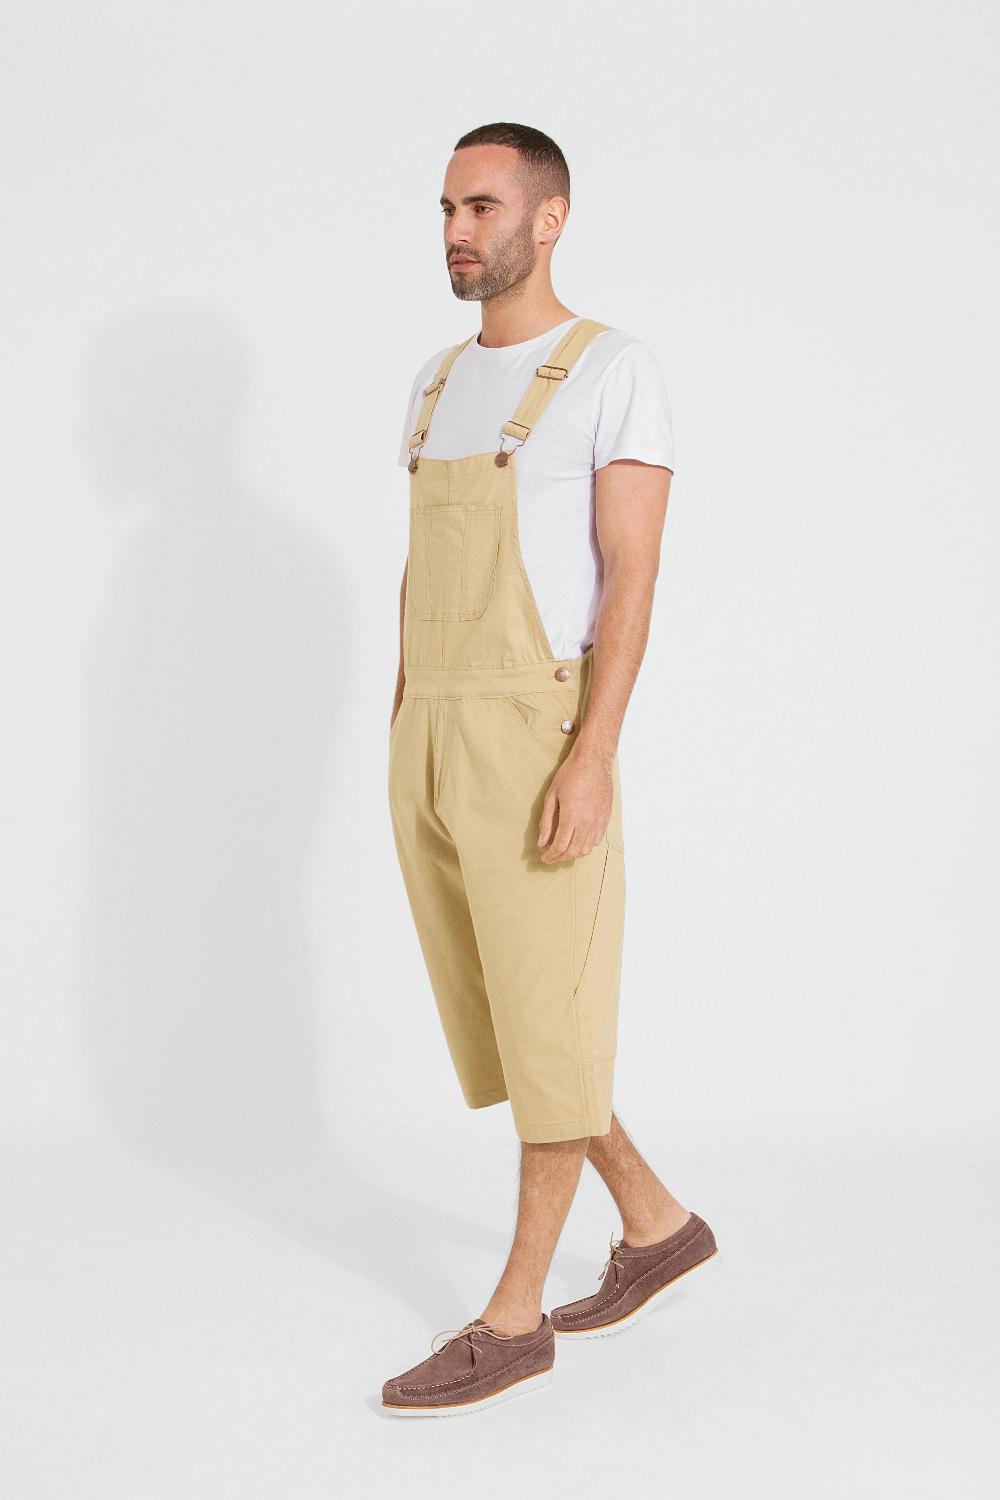 Full frontal pose angled to his right and walking, wearing bib-up sand coloured dungaree shorts from Dungarees Online.